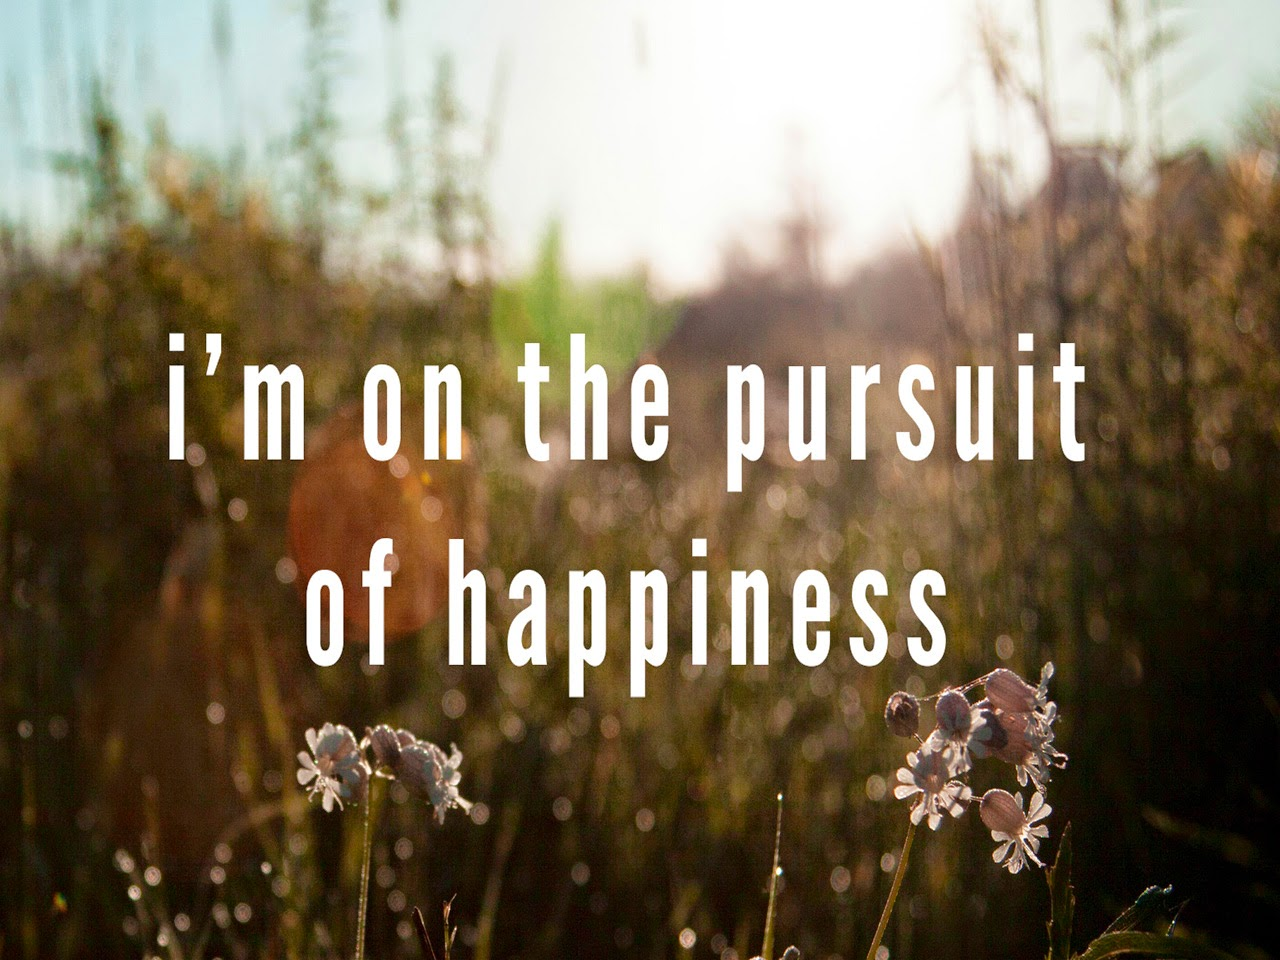 Happiness Quotes: Happiness Quotes And Sayings To Make Happy